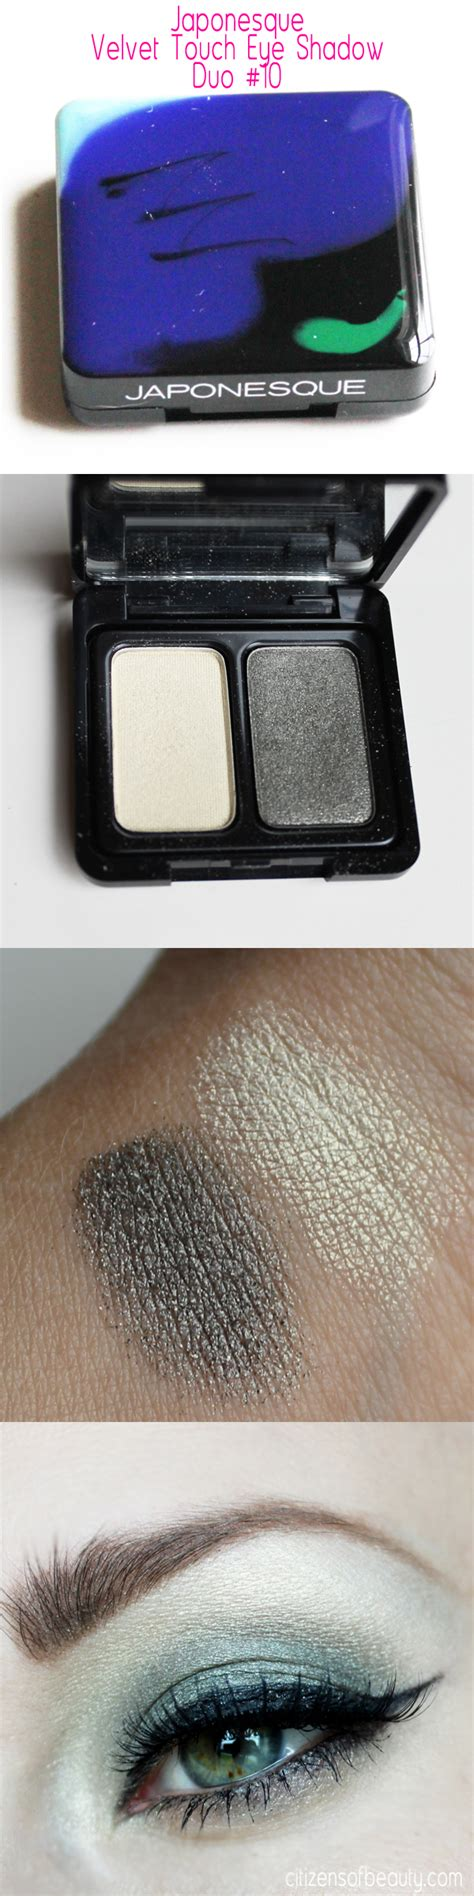 Review Eye Shadow Viva Duo japonesque velvet touch eye shadow and makeup brush review